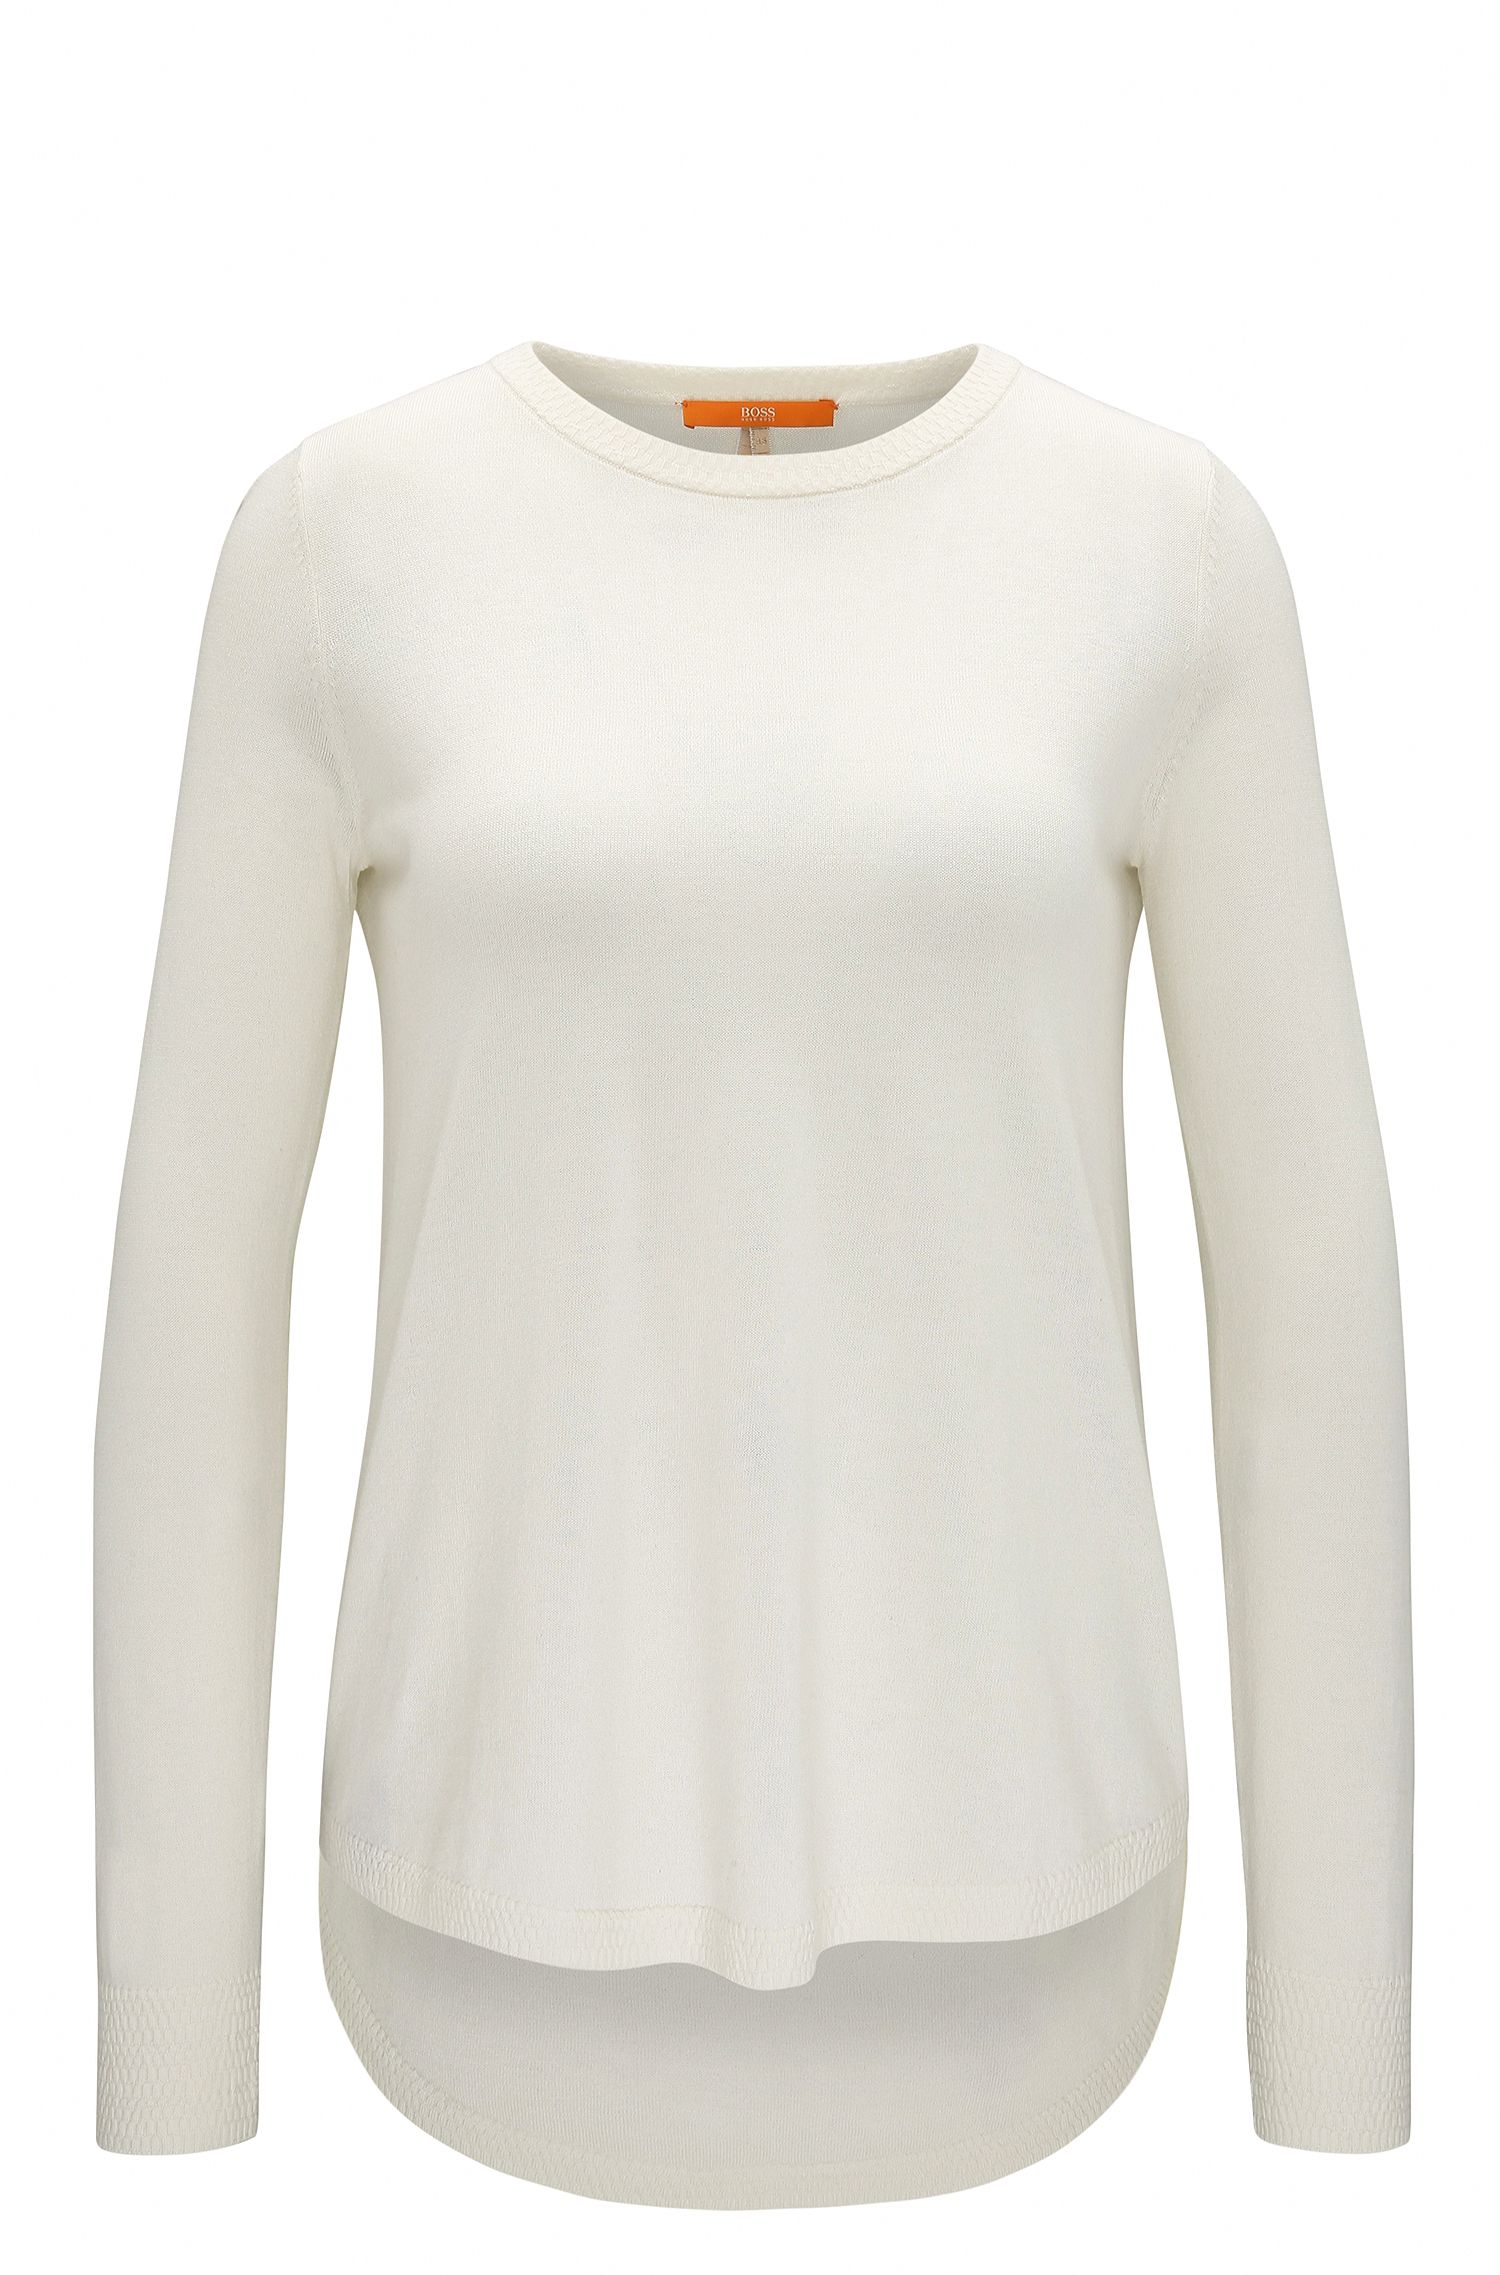 Lightweight cotton-blend sweater with structured details